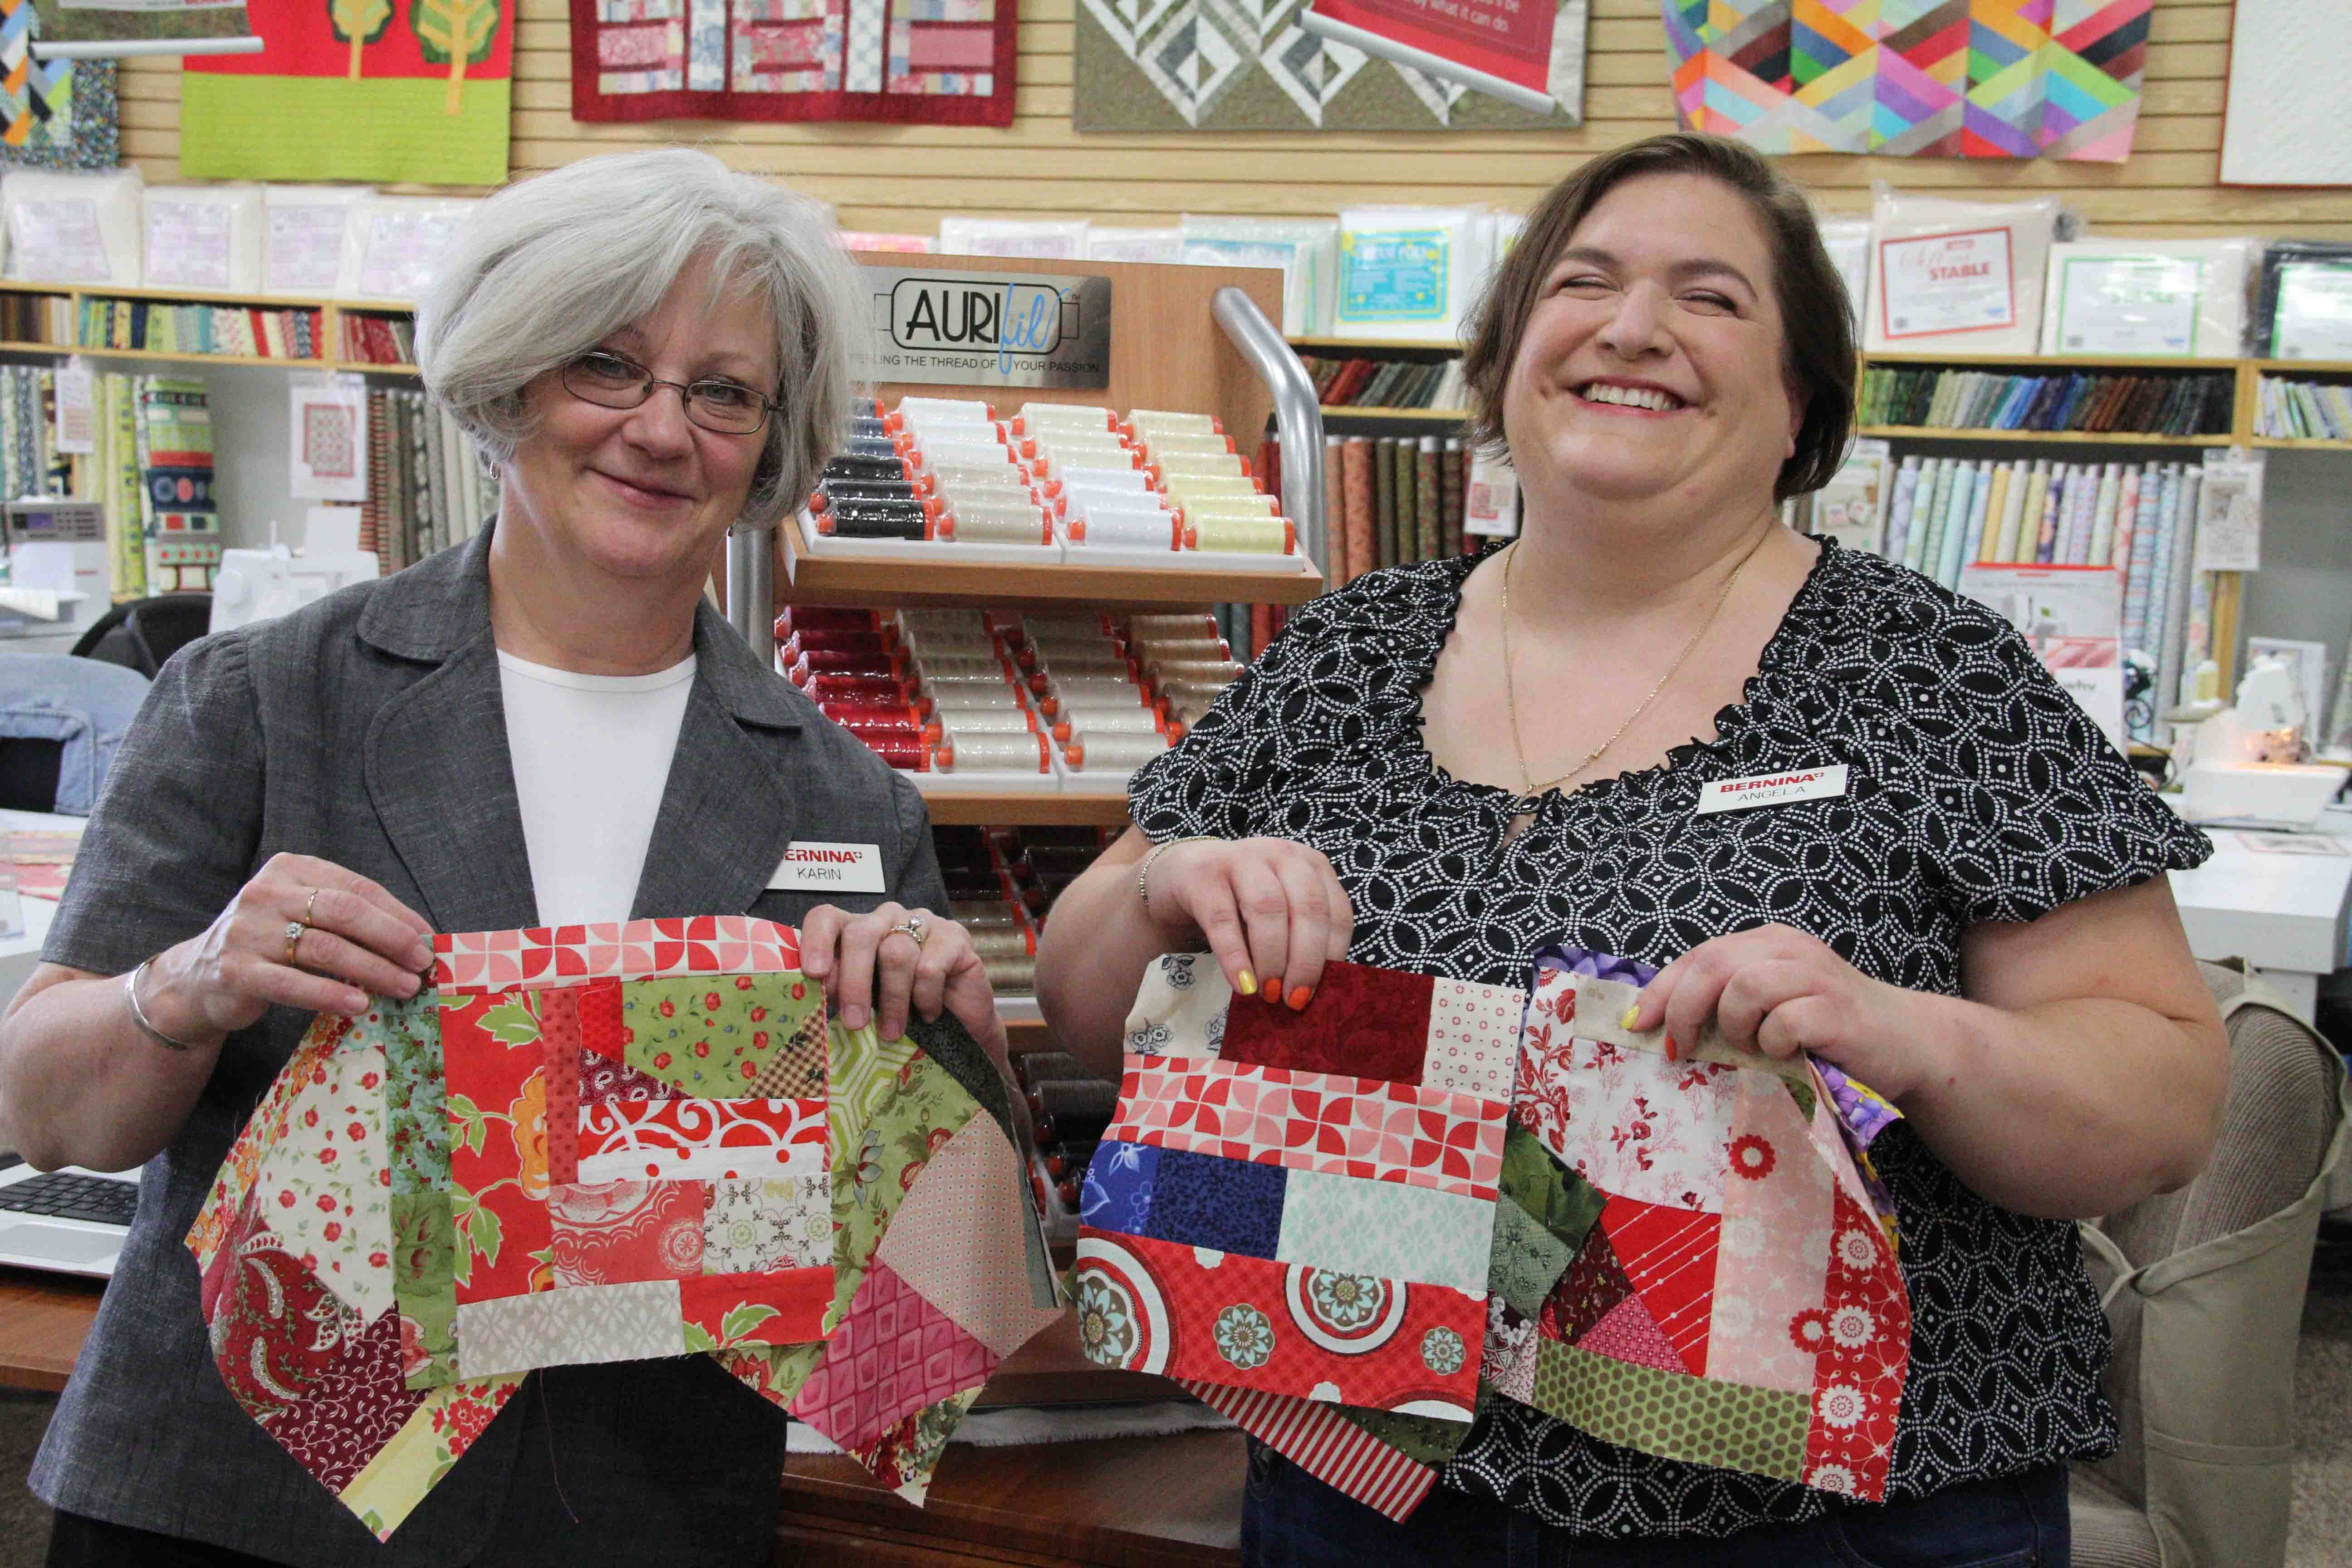 Owner Karin Furio and Angela Aldaz display quilt blocks at Sew Generously made by volunteers.